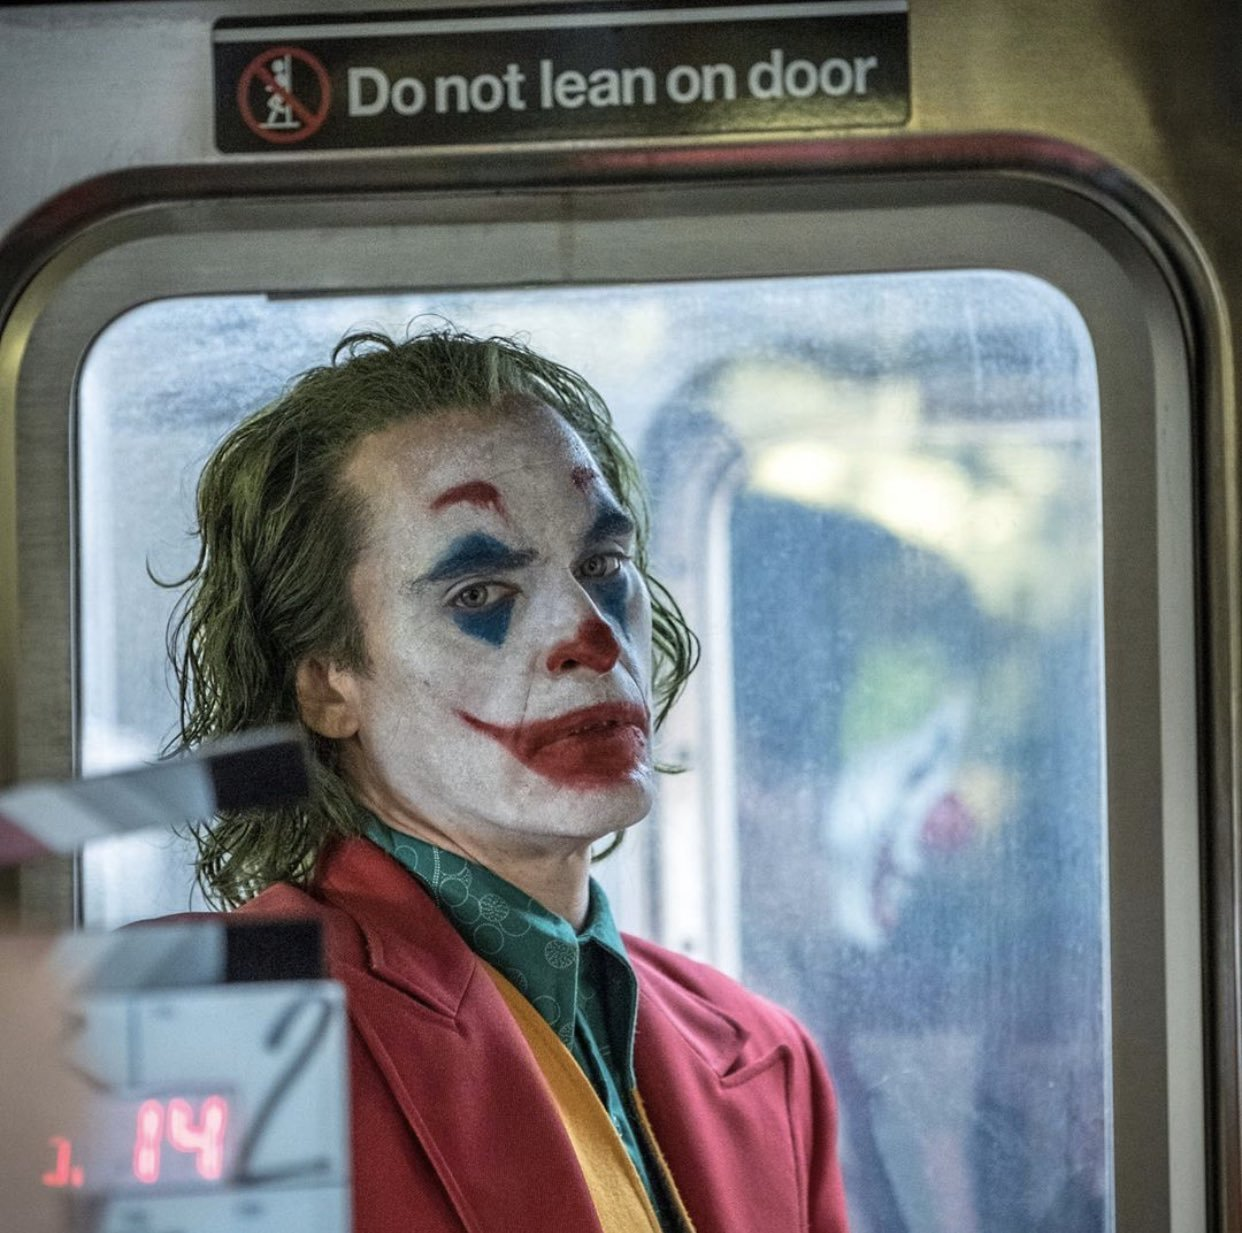 Joker (2019) Behind the Scenes - Joaquin Phoenix